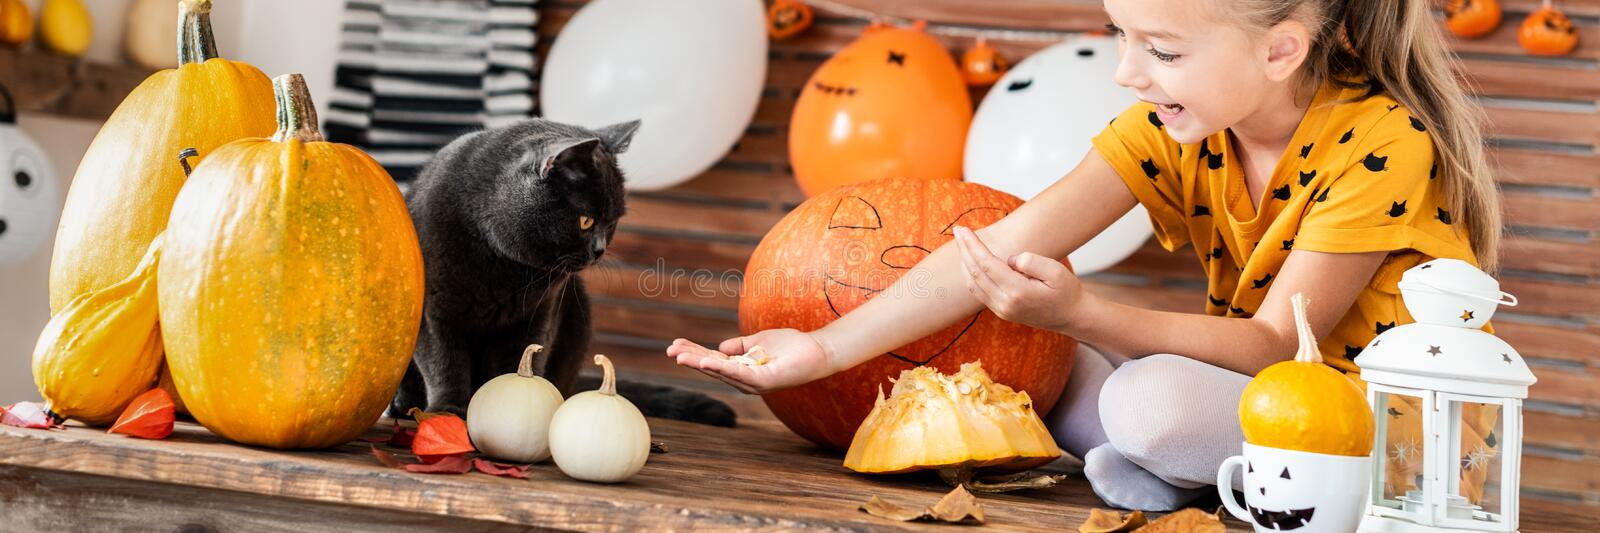 Adorable young girl sitting on a table playing with halloween pumpkin and her pet cat. Halloween lifestyle background. royalty free stock images